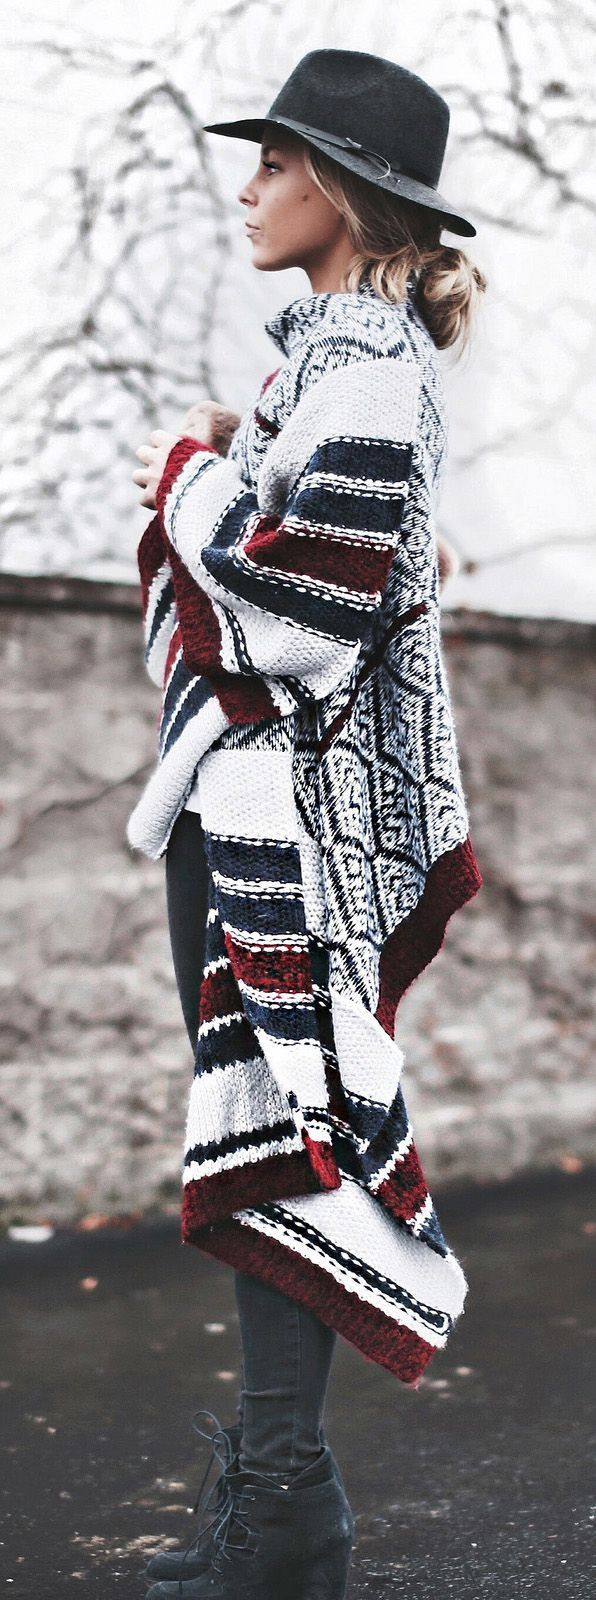 Fall Fashion Trends and Street Style Guide                                                                                                                                                      More